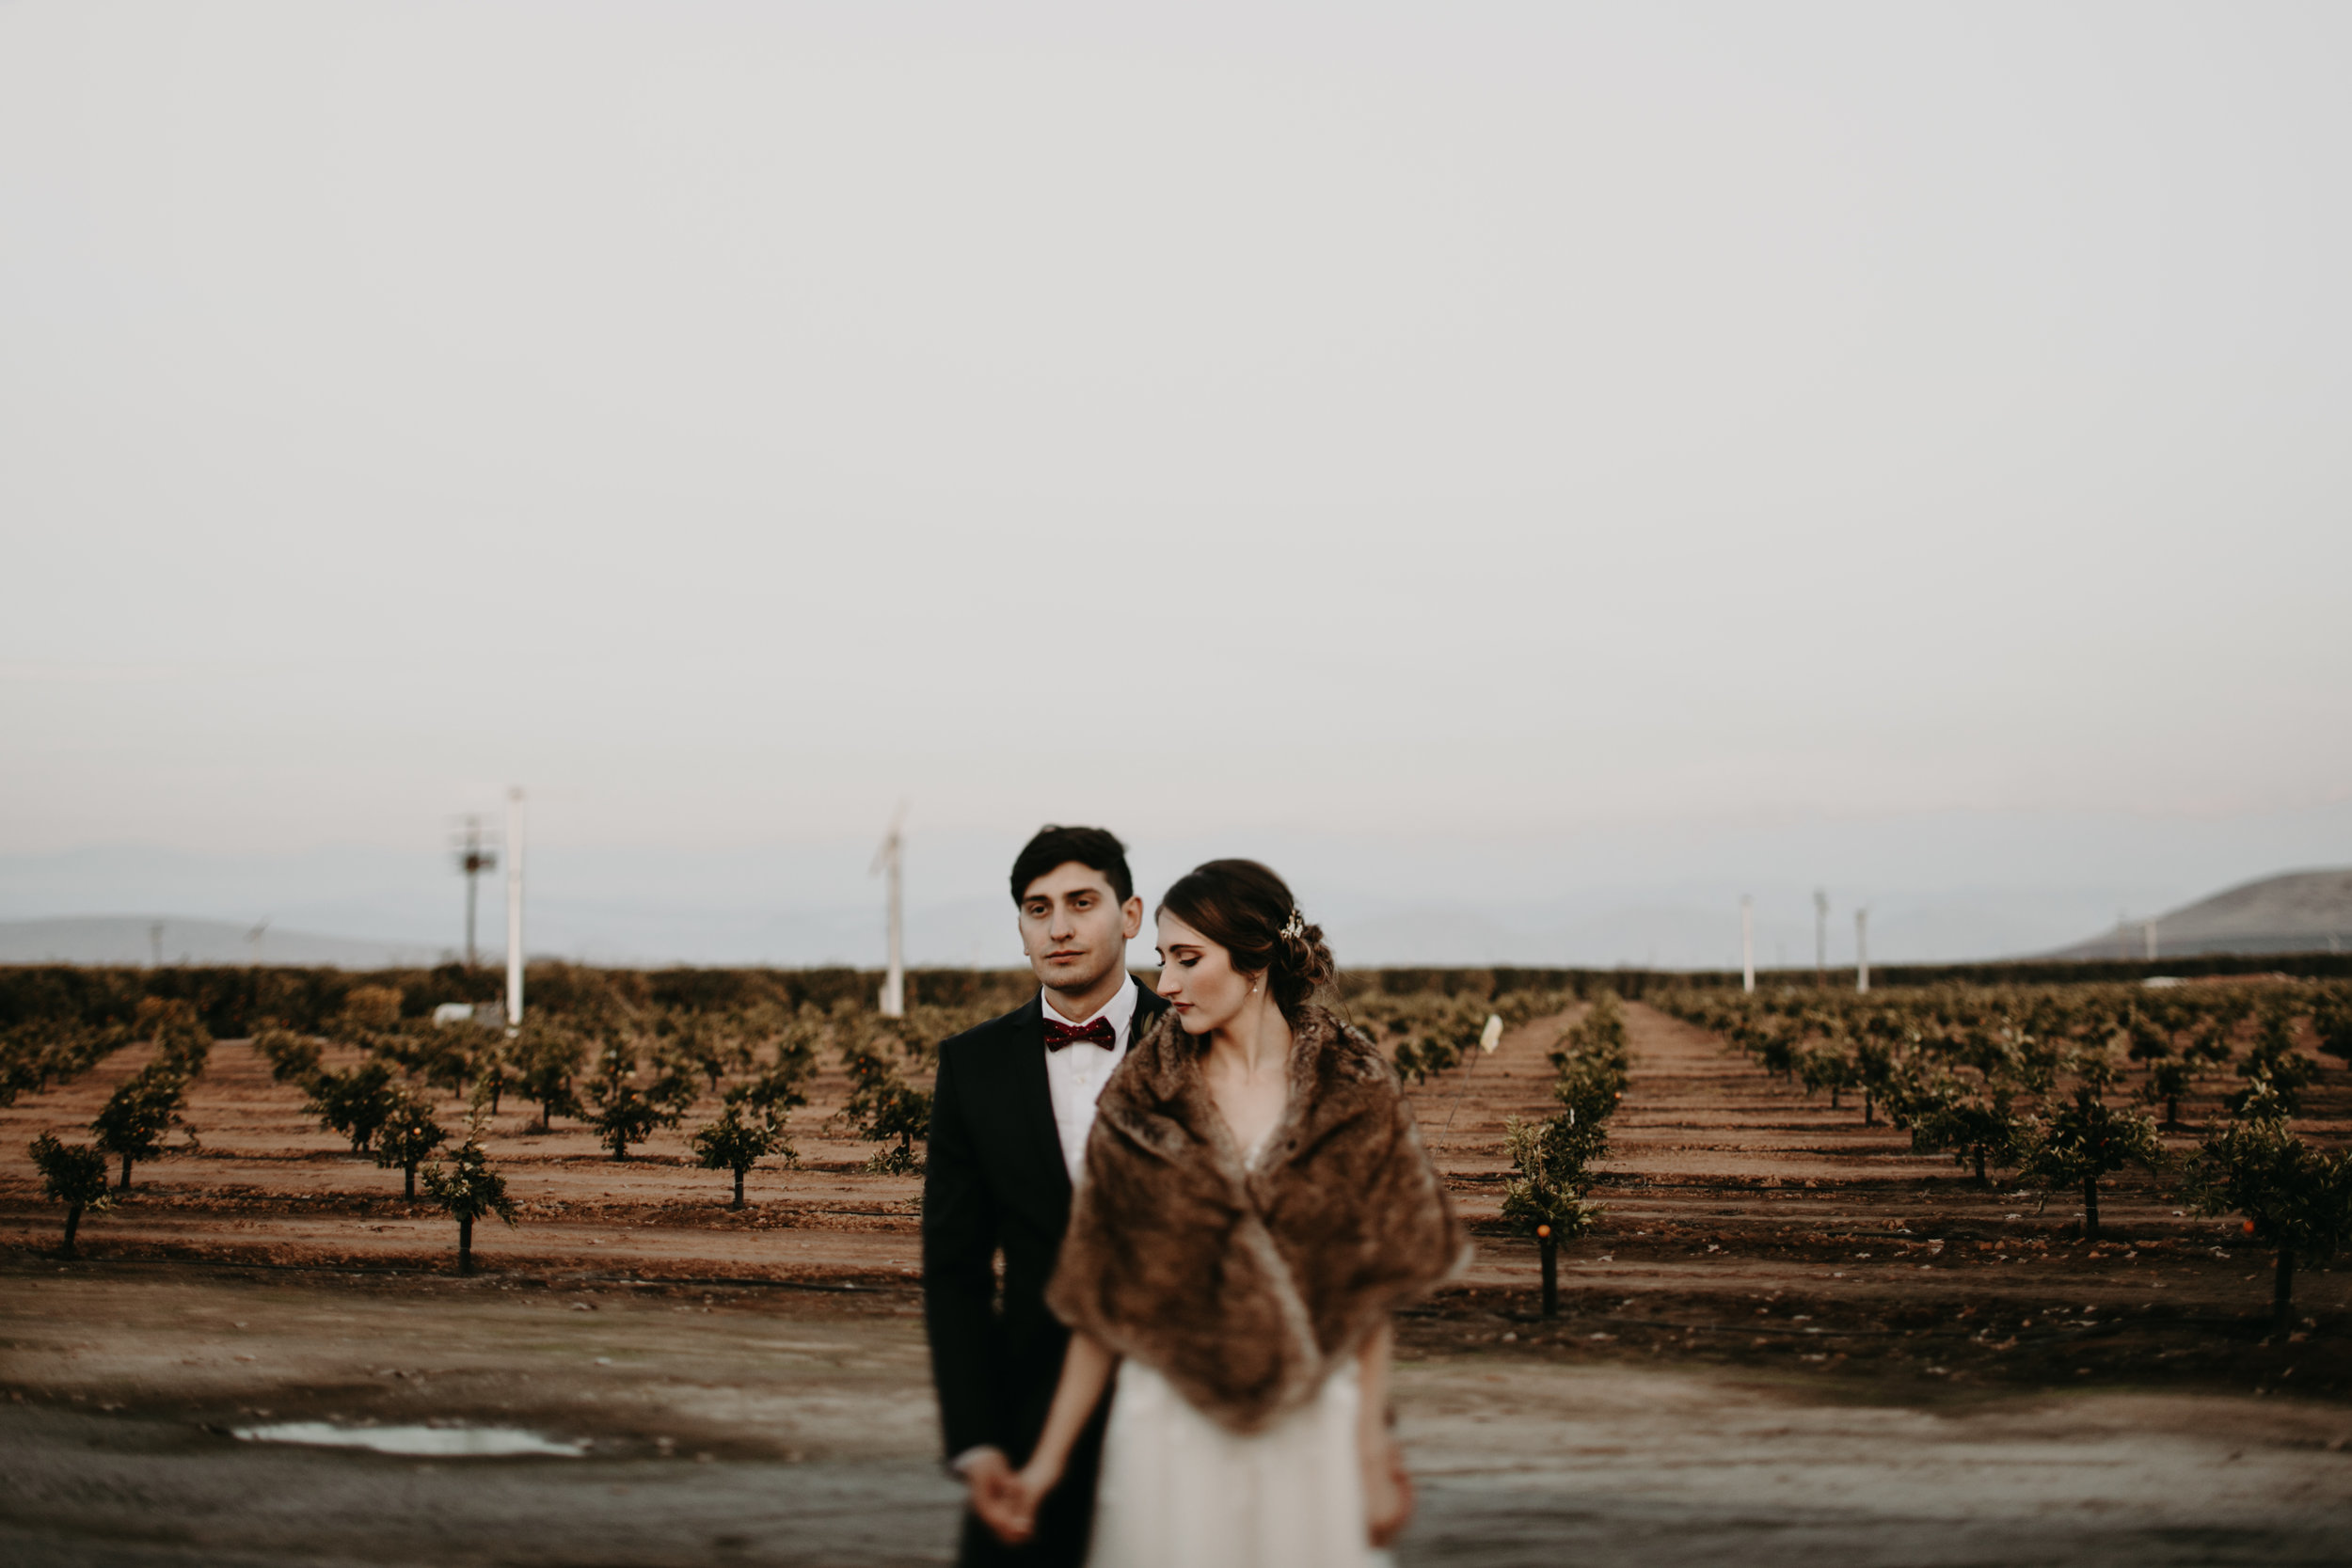 Seven Sycamores Ranch Wedding Gabby & Yosef Emily Magers Photography-699.jpg